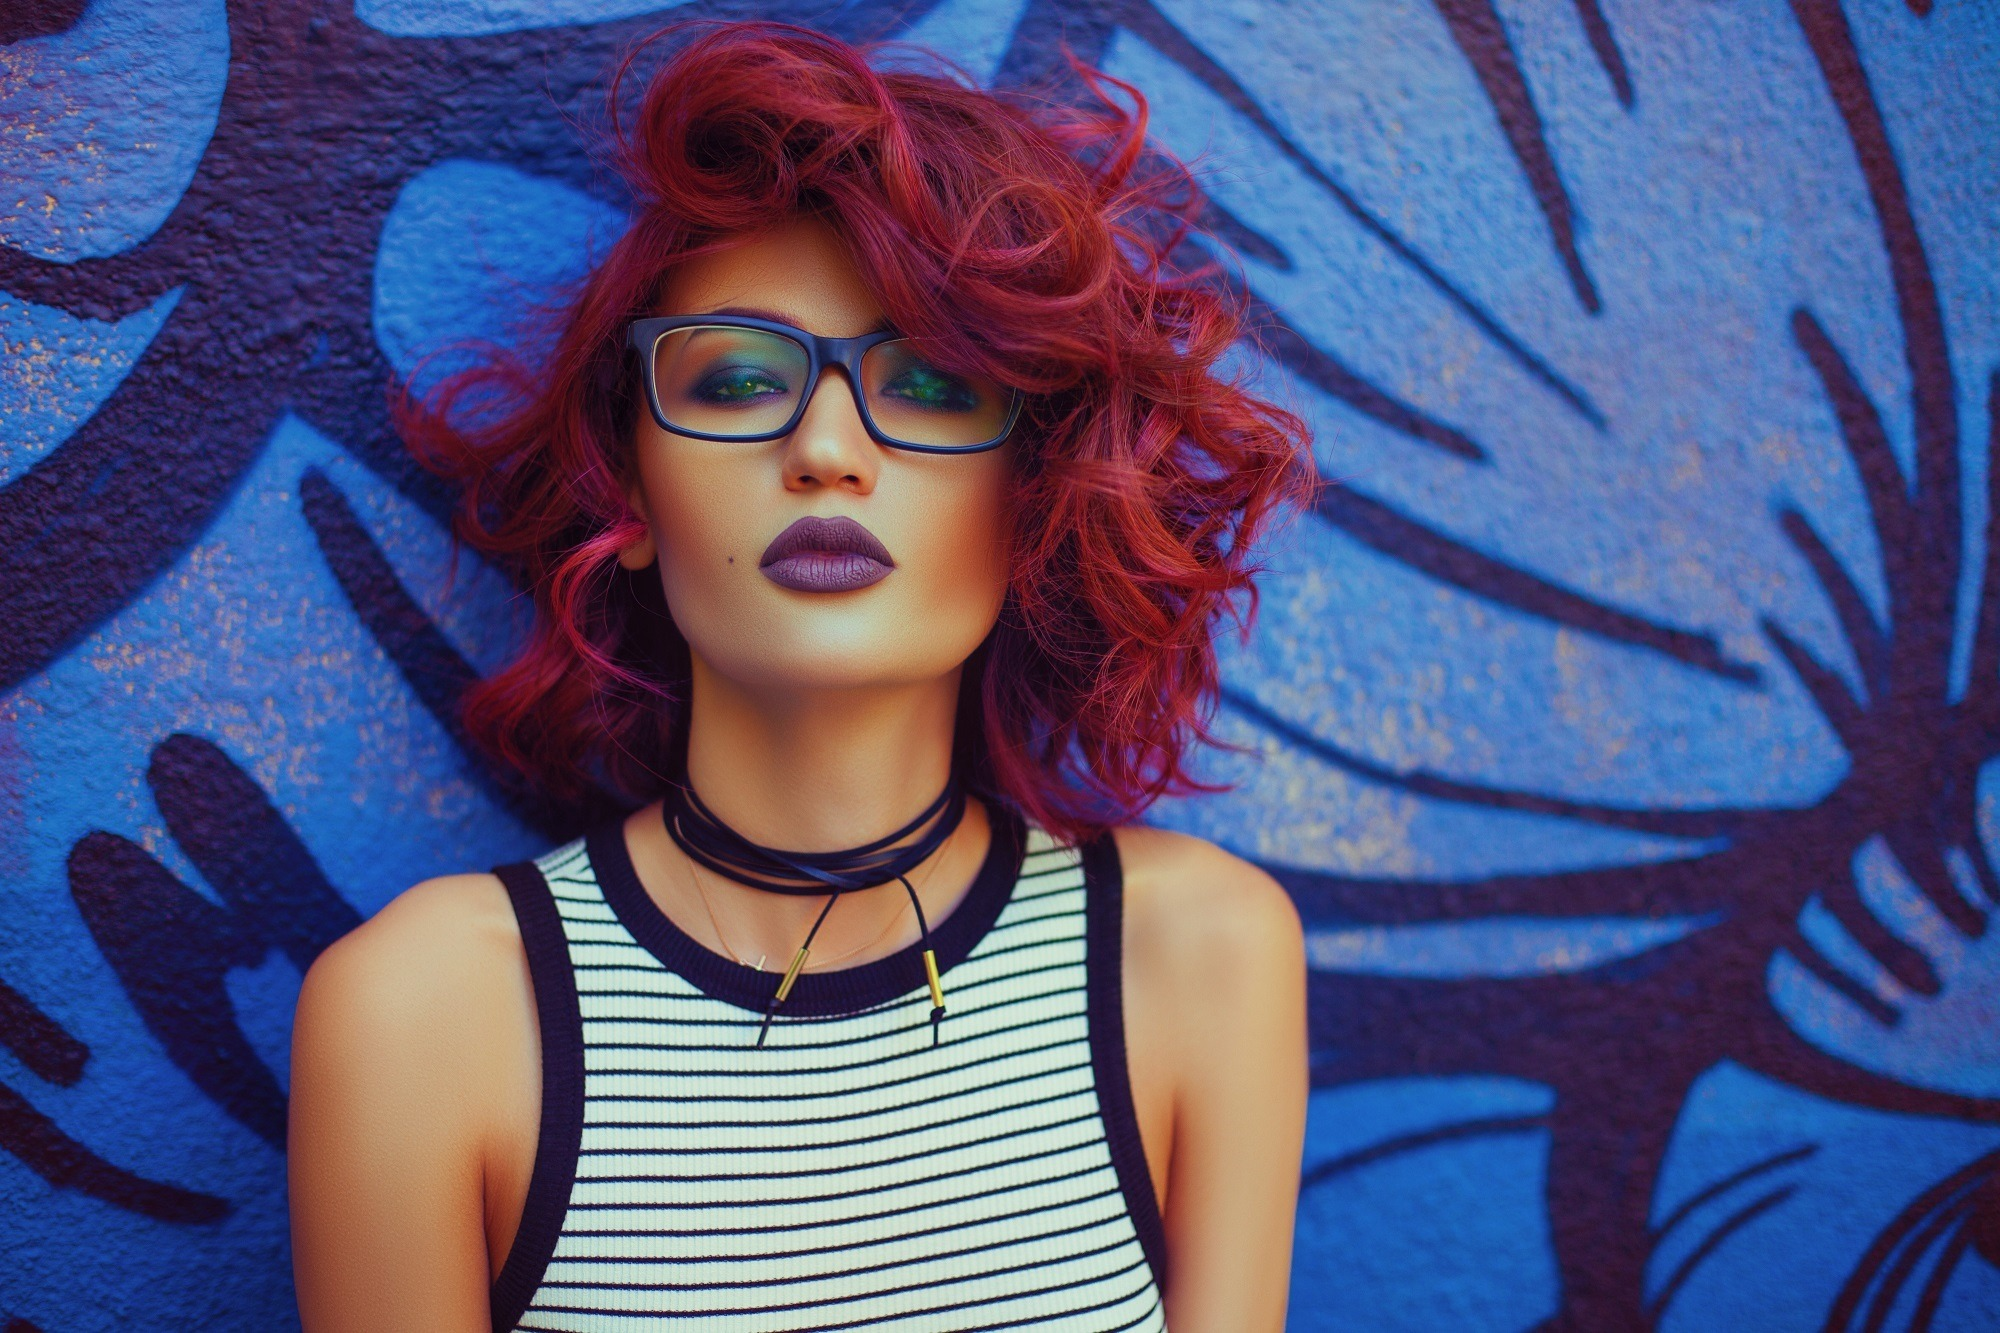 Short hair curls: Woman with morena skin and layered curly red hair